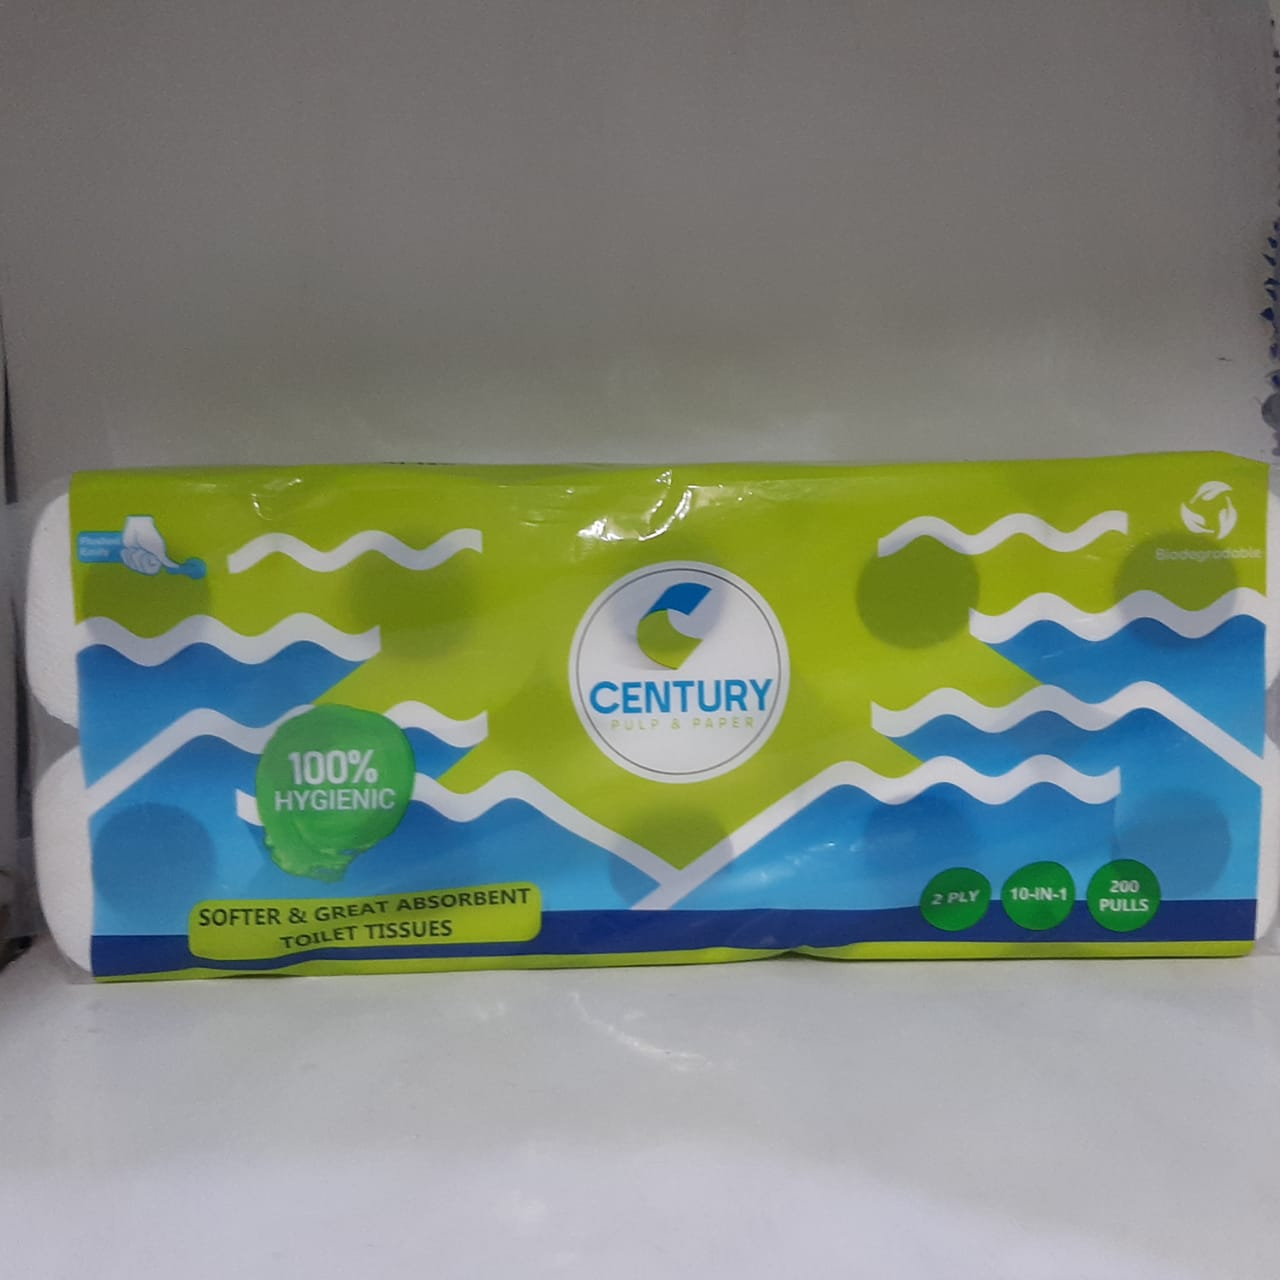 Toilet Tissues 10 in 1 2 Ply